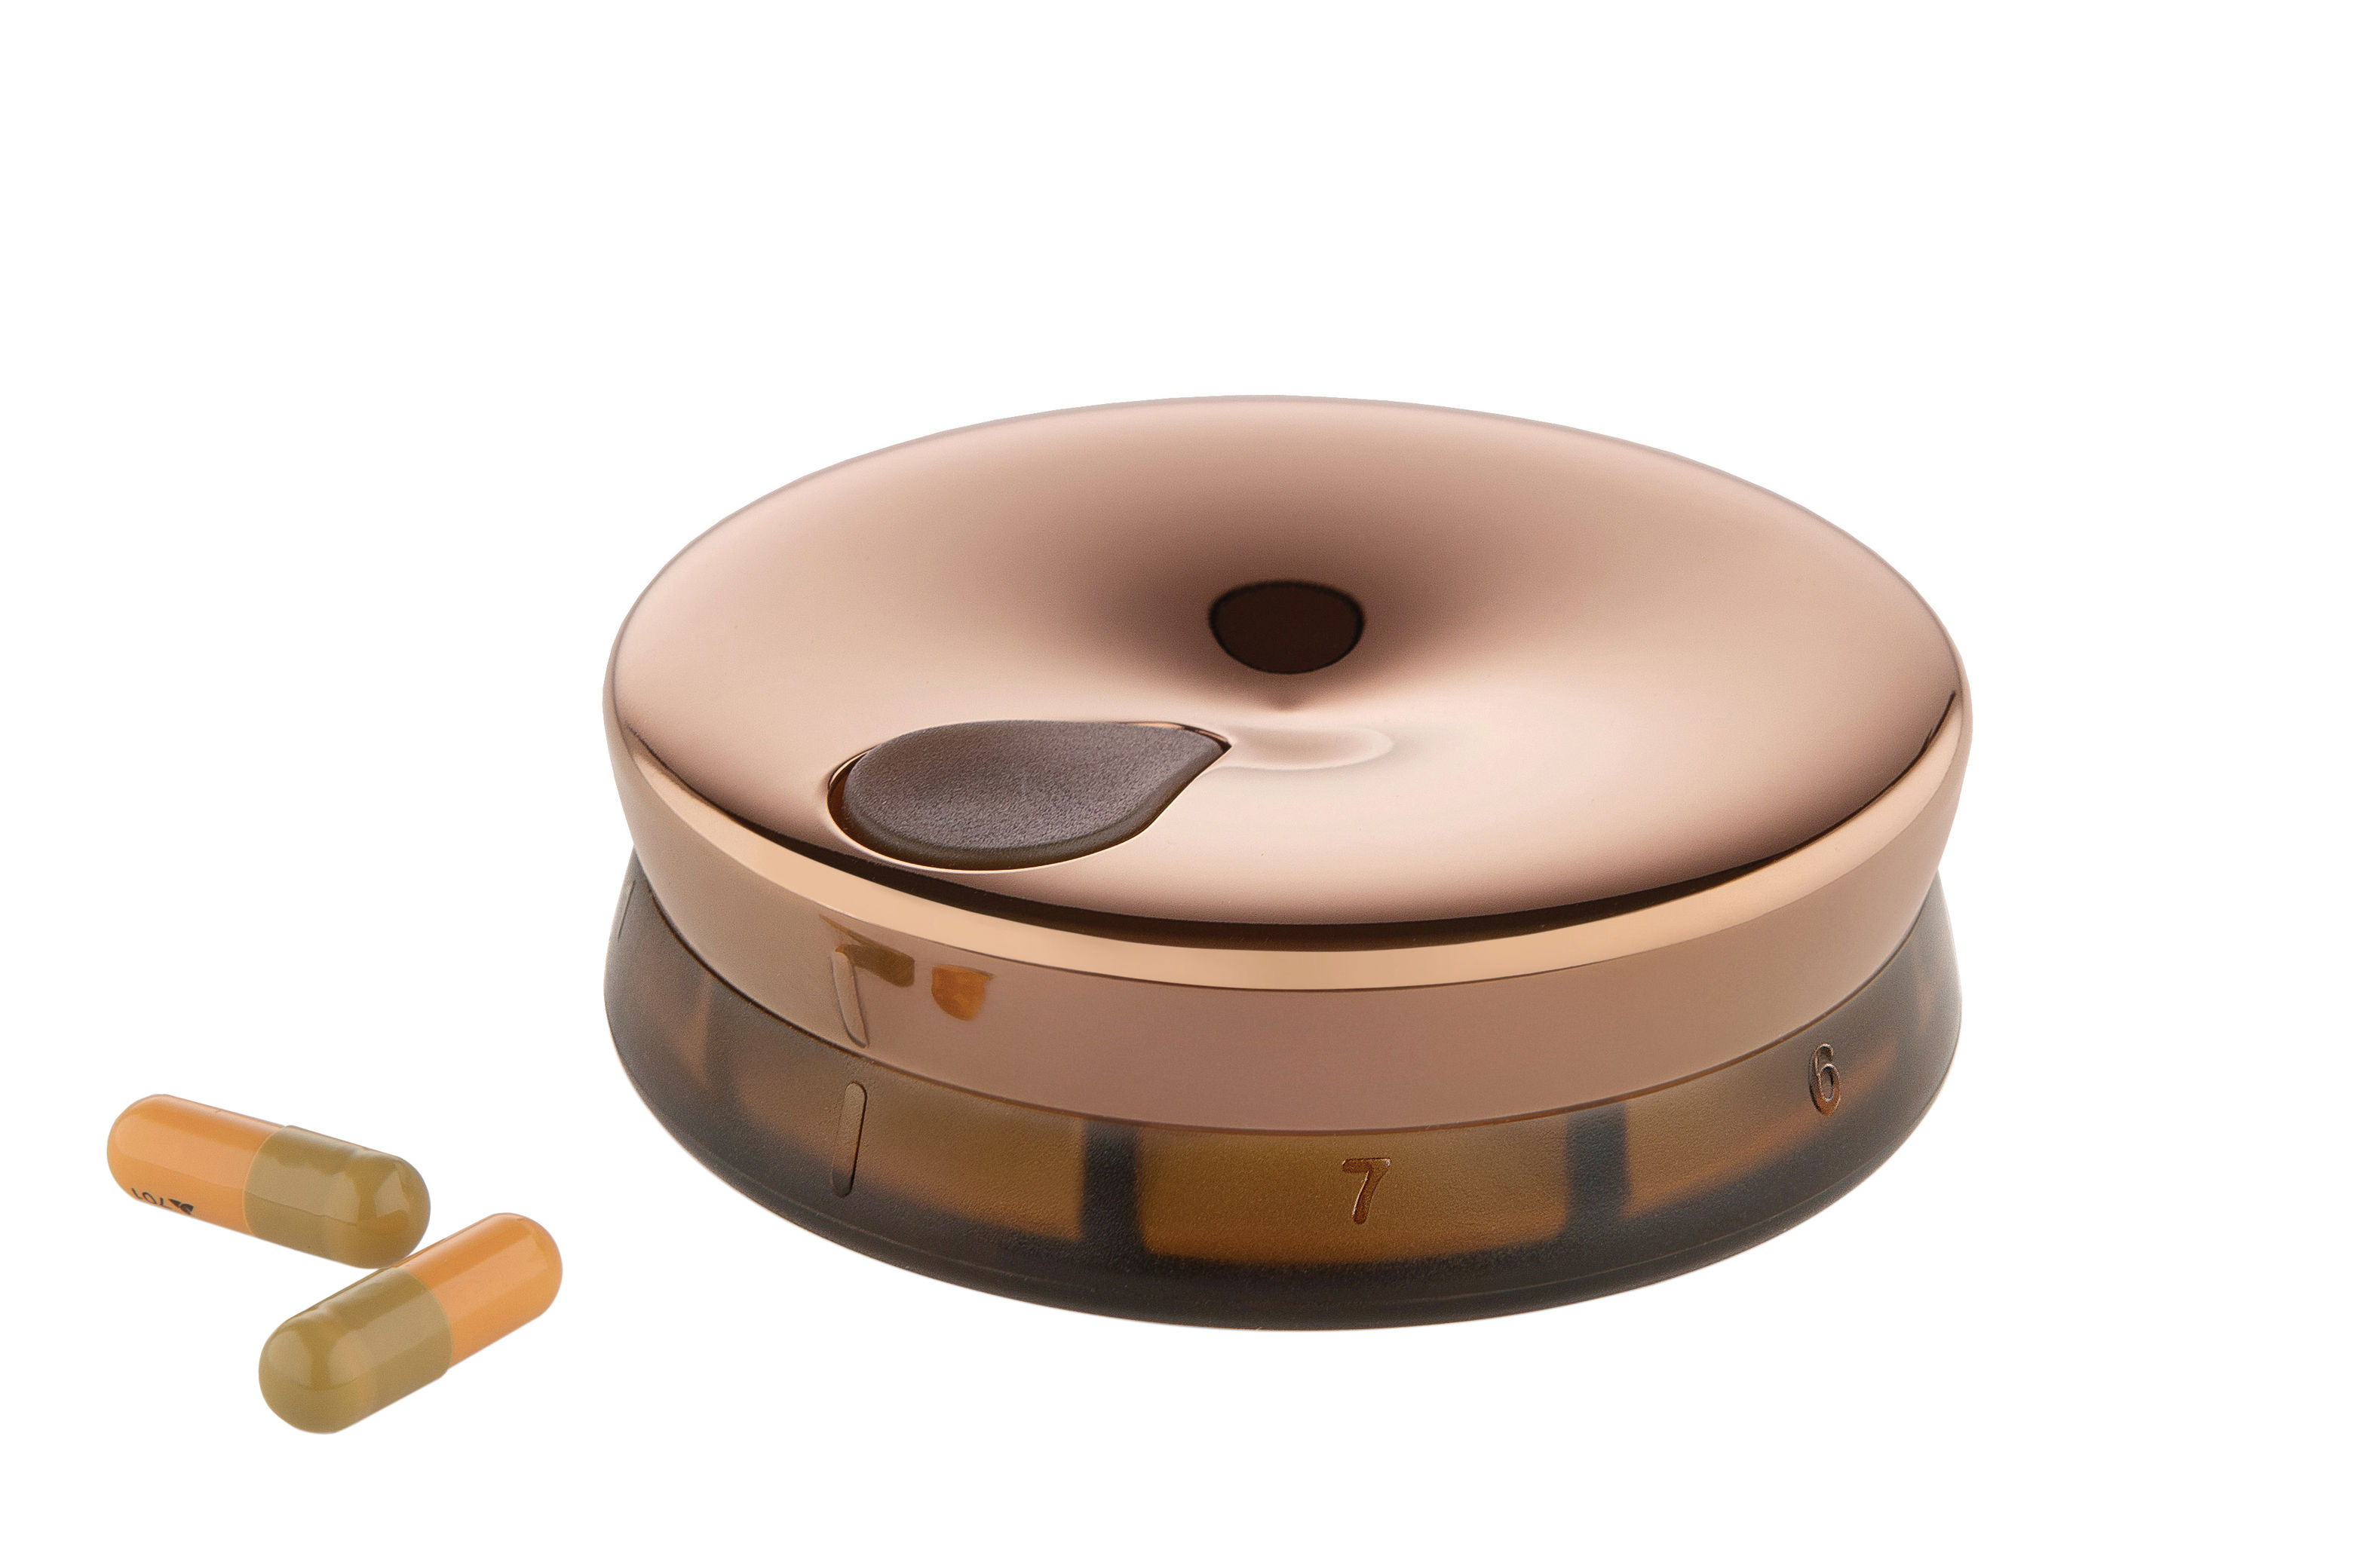 Accessories - Bags, Purses & Luggage - Yoyo Pill dispenser by Alessi - Steel / Brown - Stainless steel 18/10, Thermoplastic resin